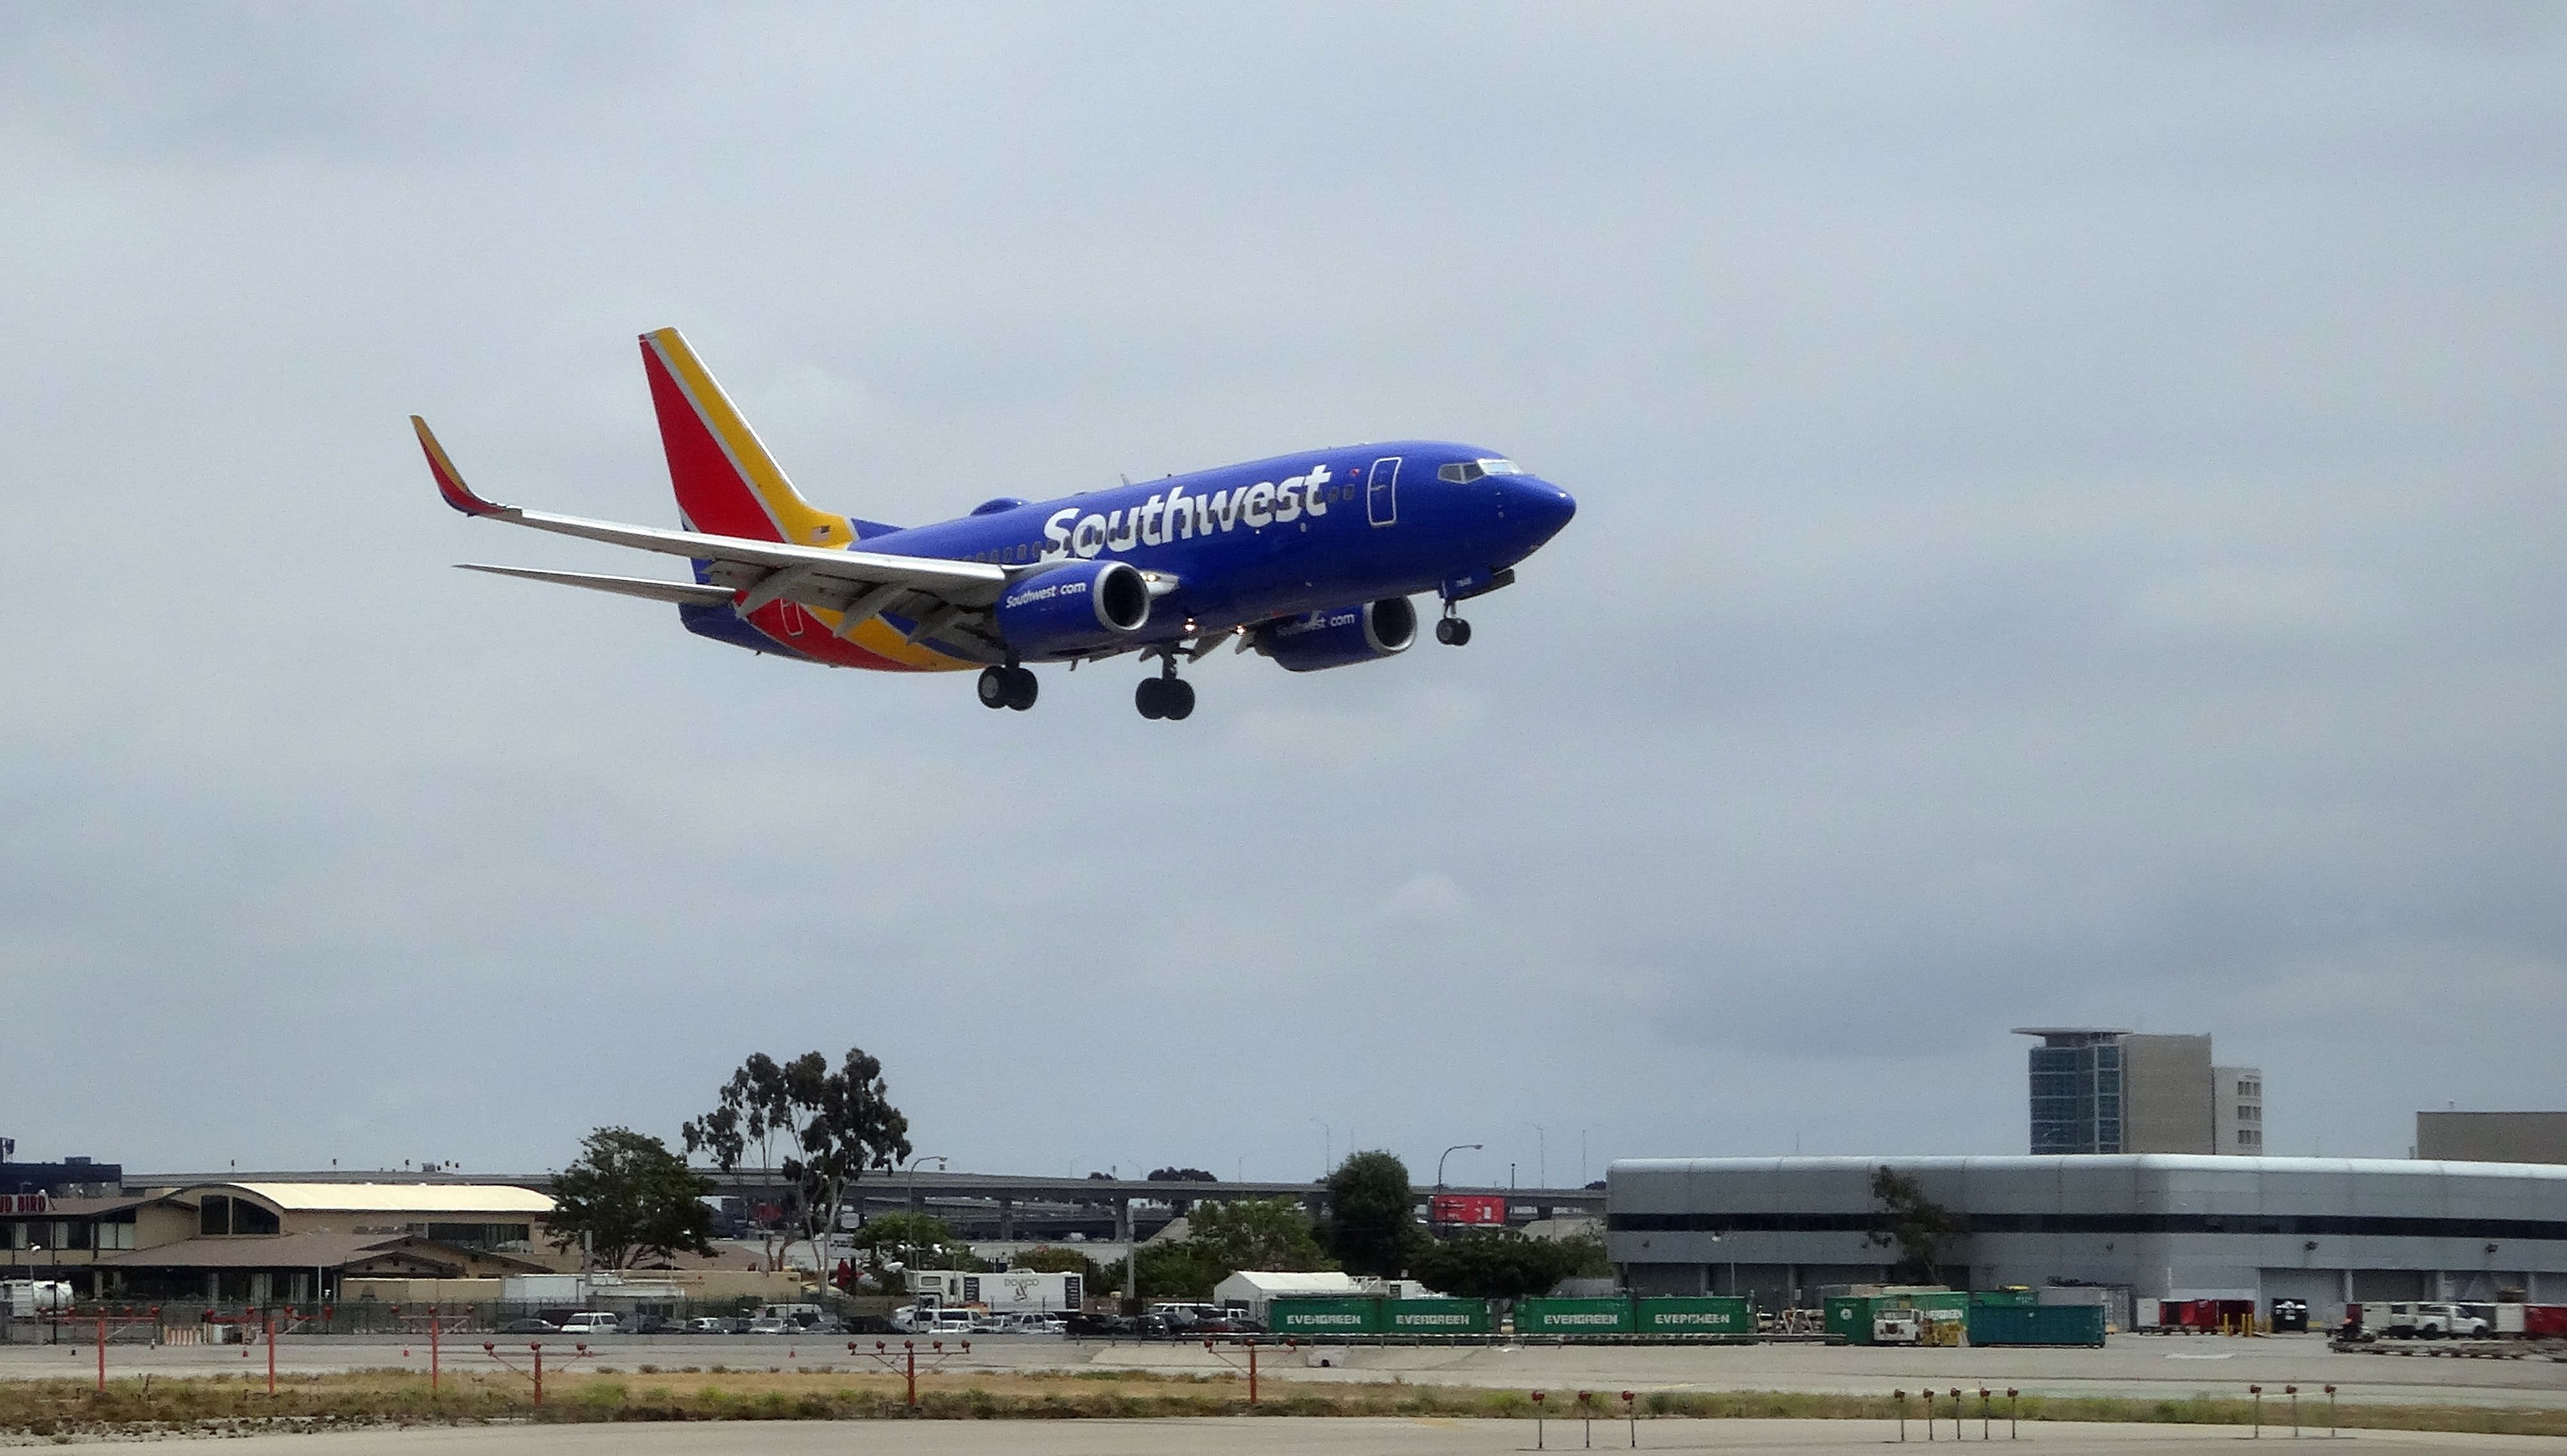 One Way Flights >> Southwest Airlines Launches Hawaii Flights Starting At 49 One Way